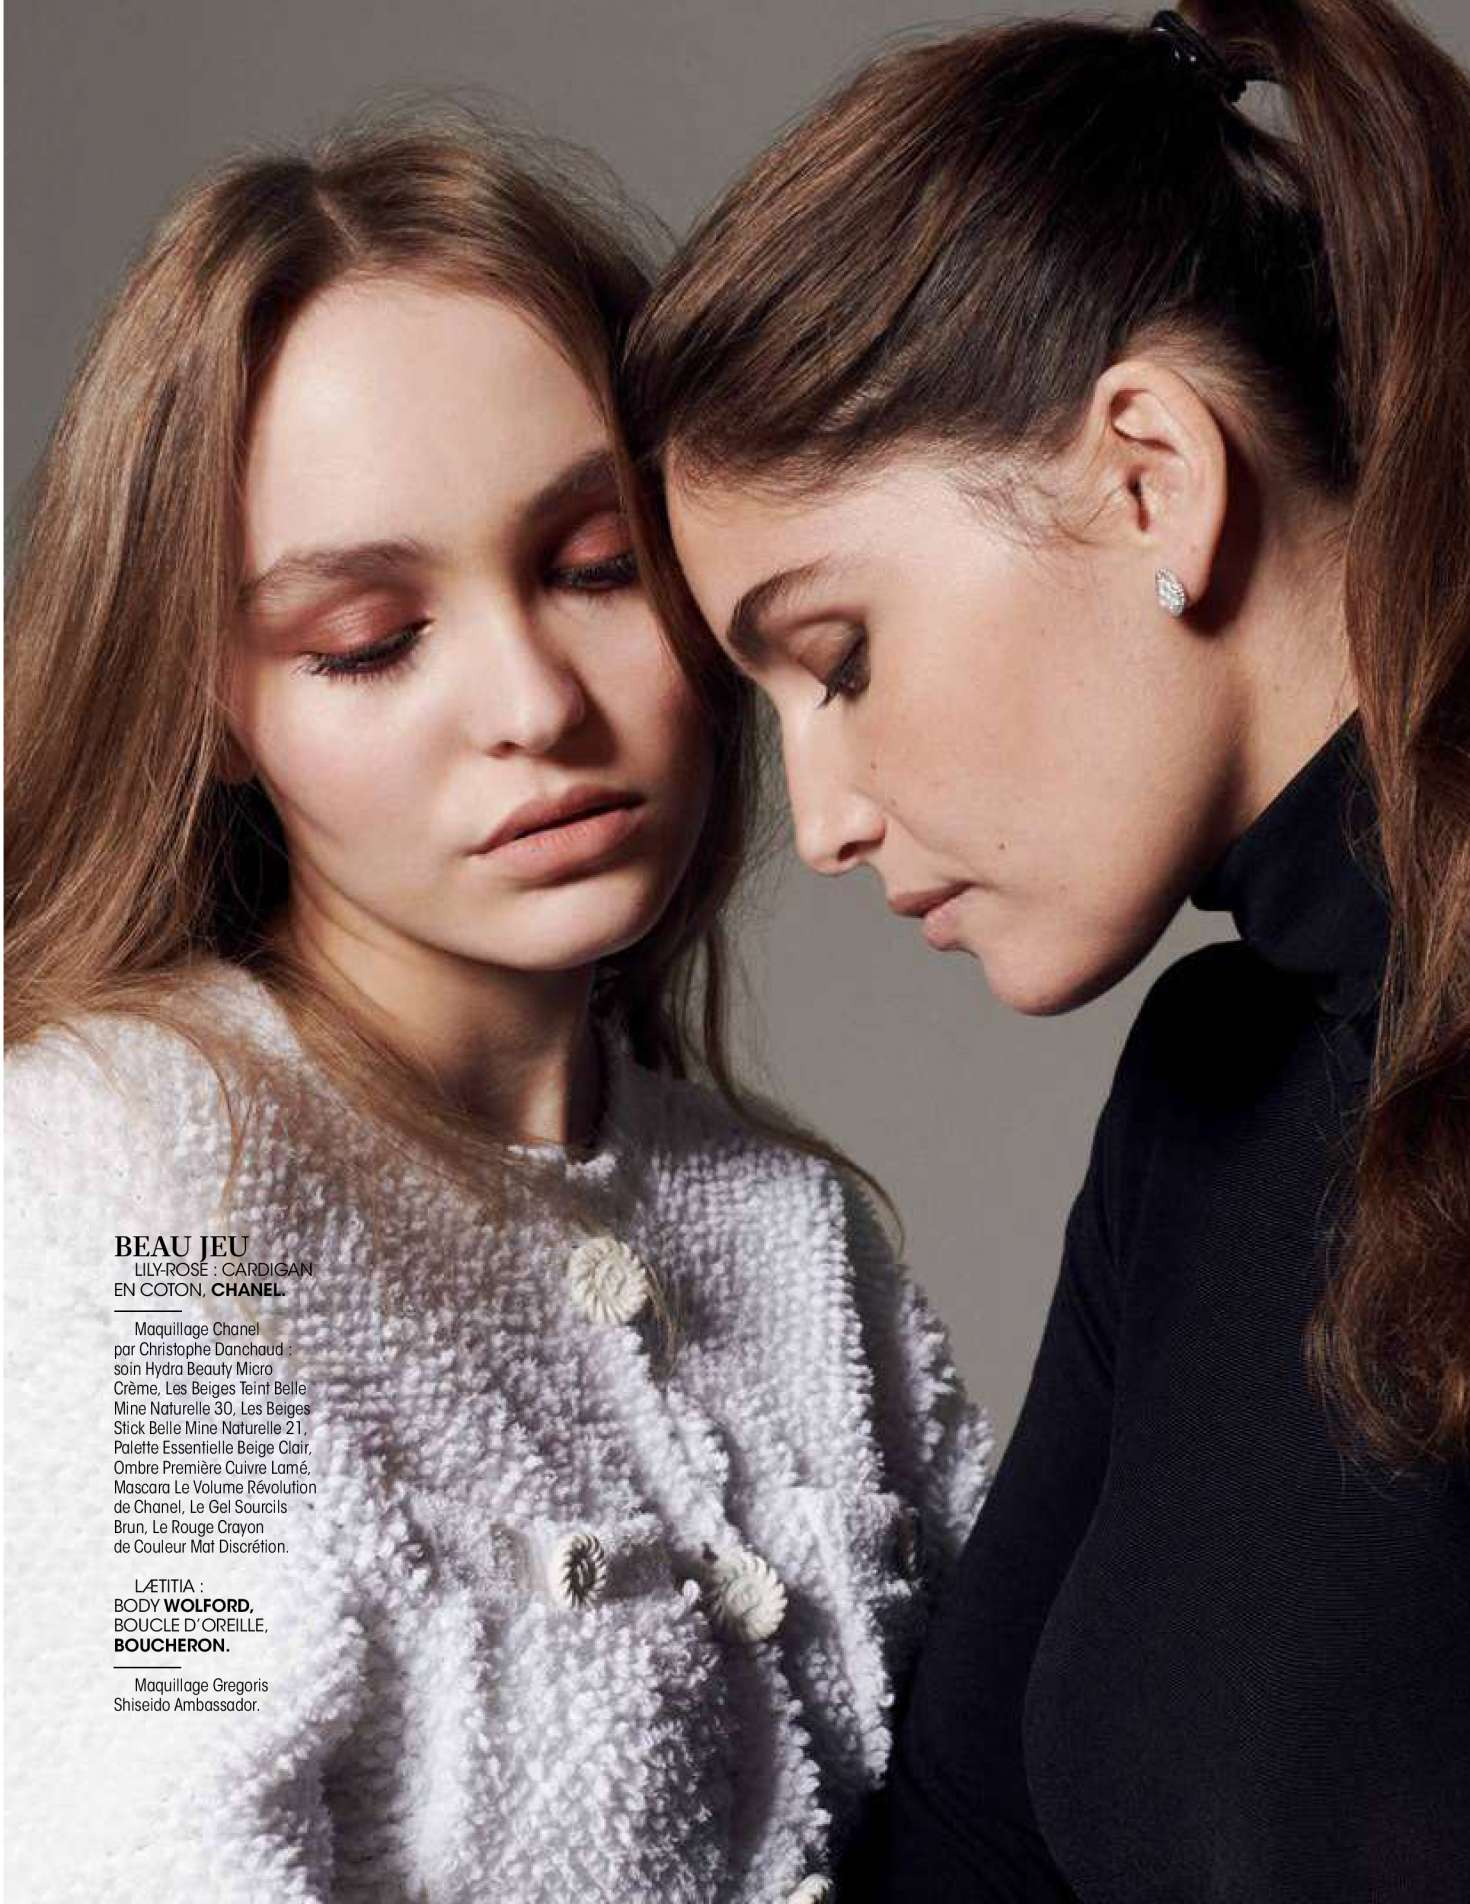 Lily Rose Depp and Laetitia Casta – Madame Figaro Magazine (December 2018)